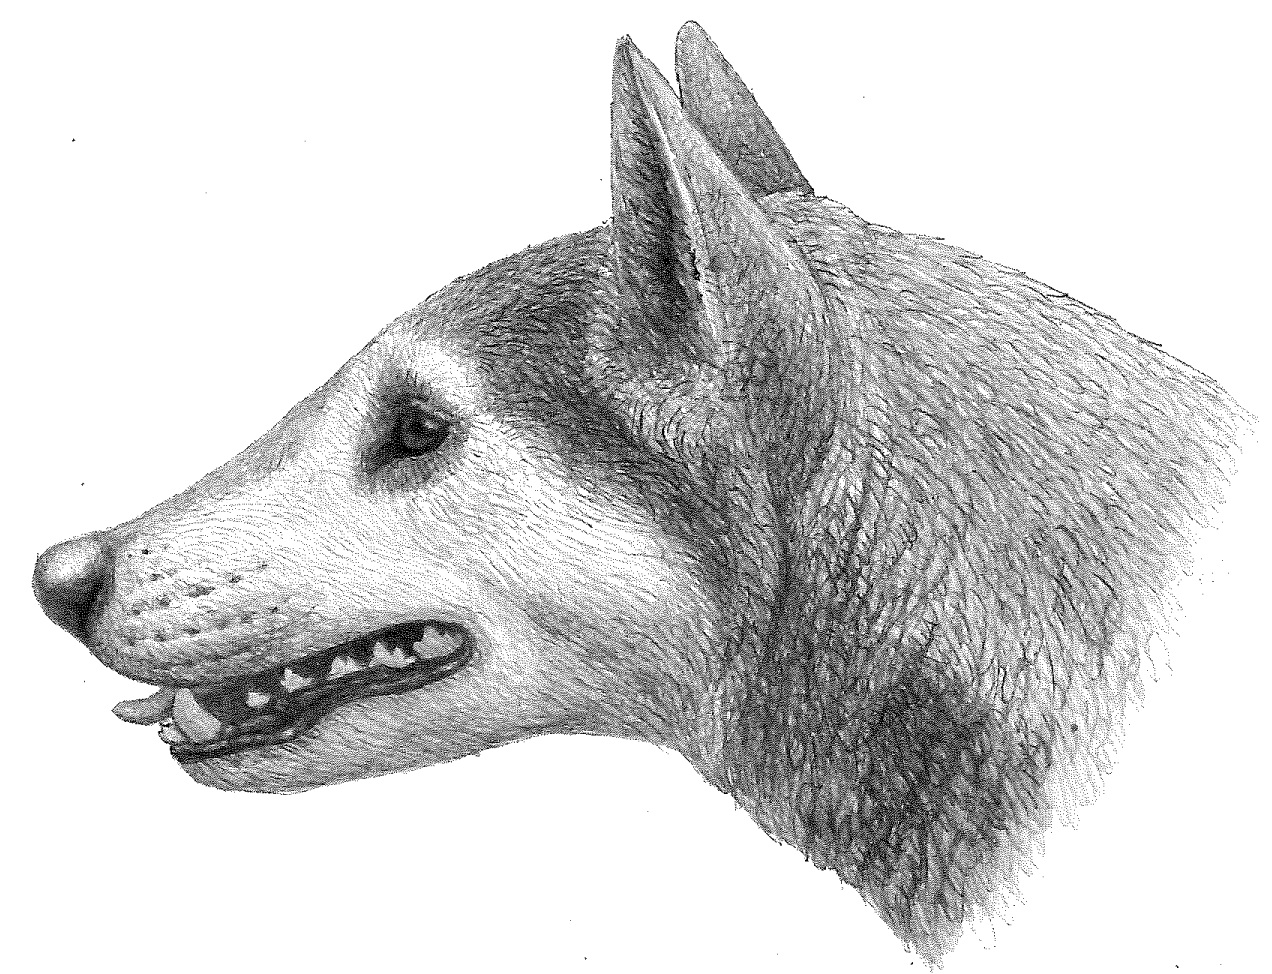 """Illustration of Cynarctus by Mauricio Antón from """"Dogs, Their Fossil Relatives and Evolutionary History."""""""